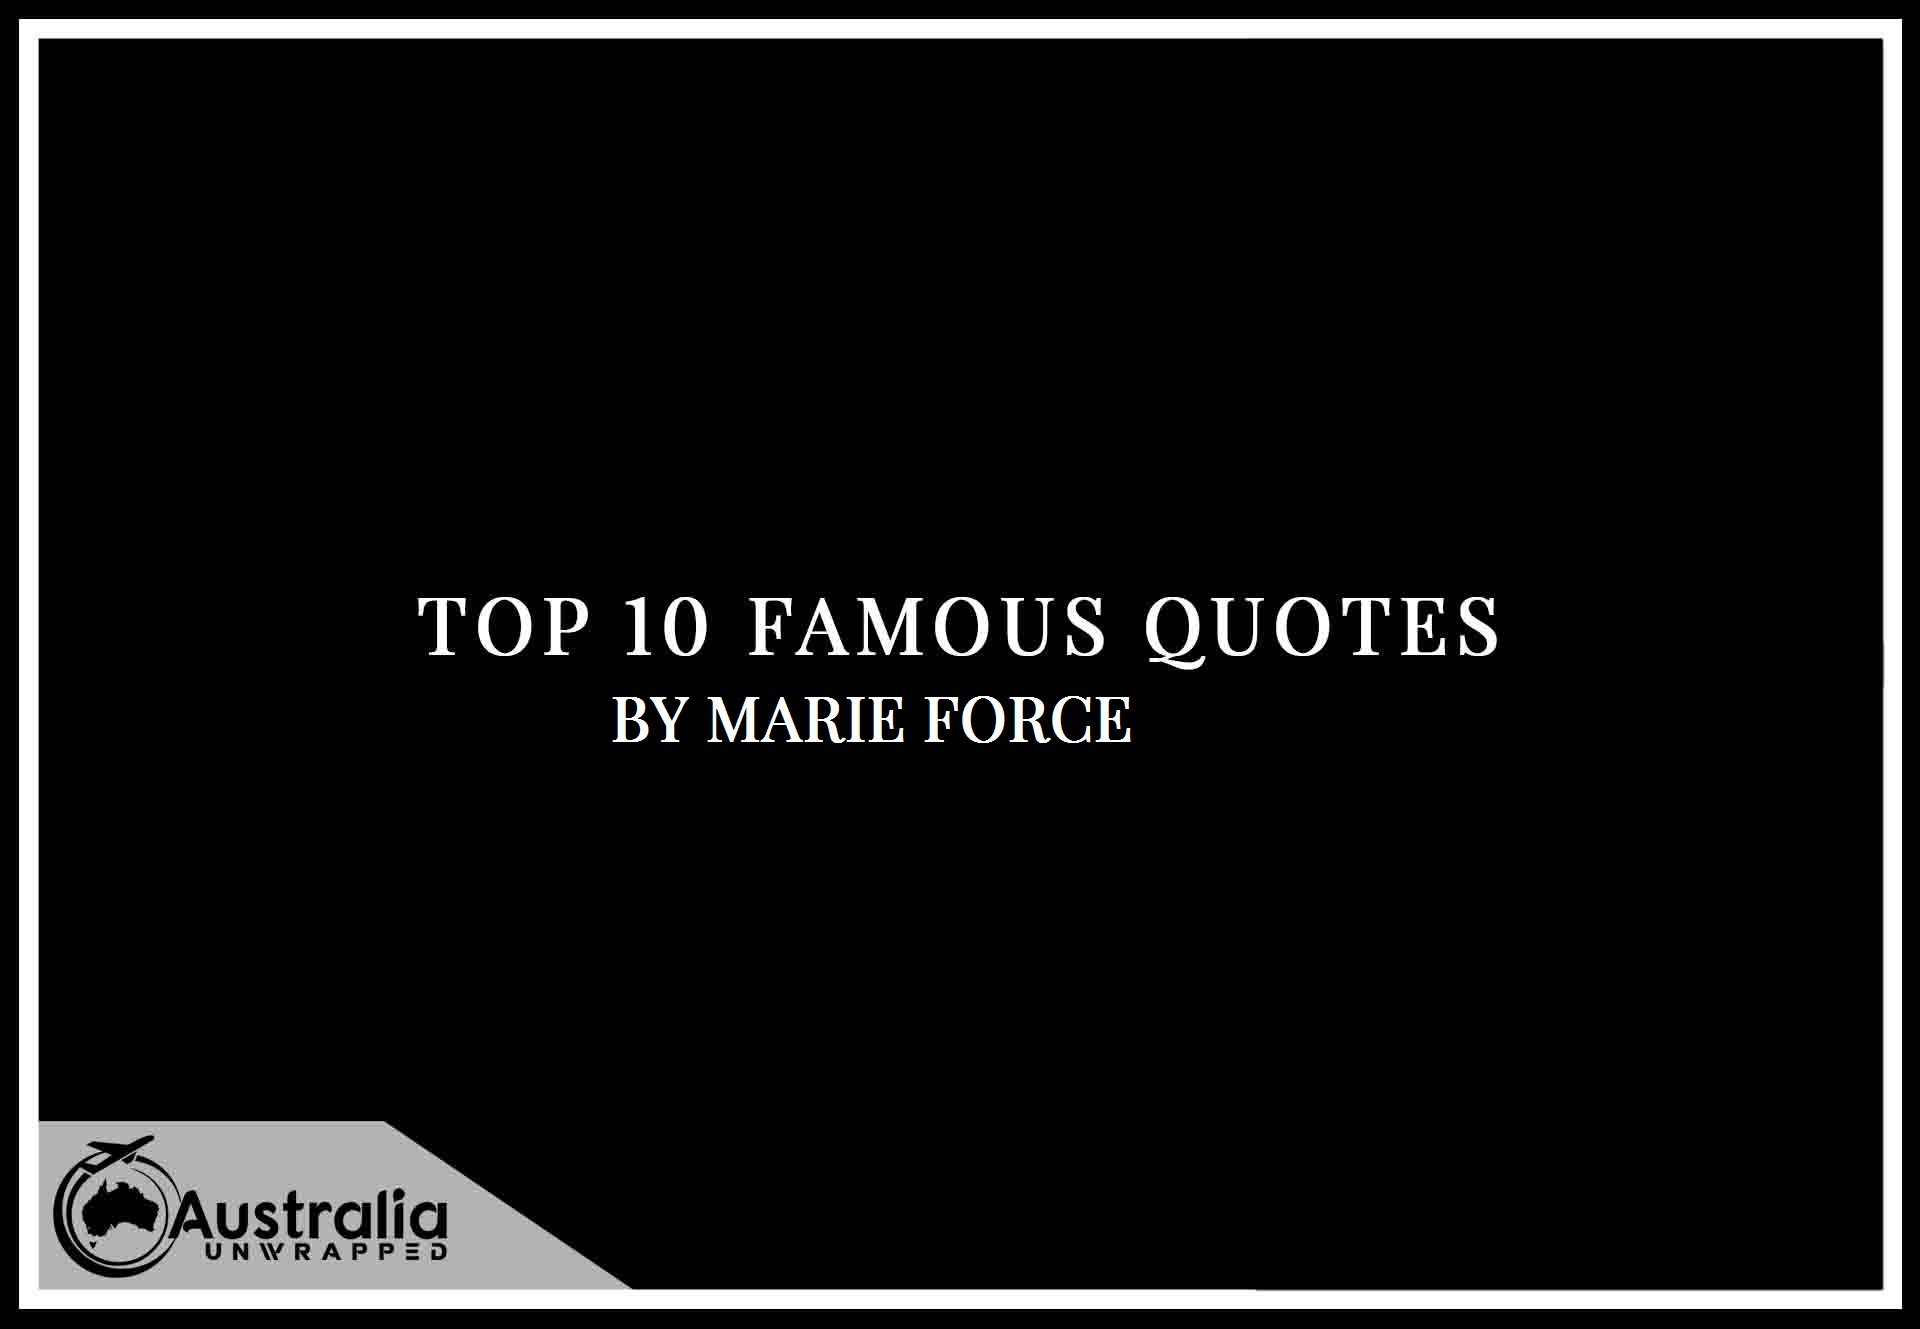 Marie Force's Top 10 Popular and Famous Quotes